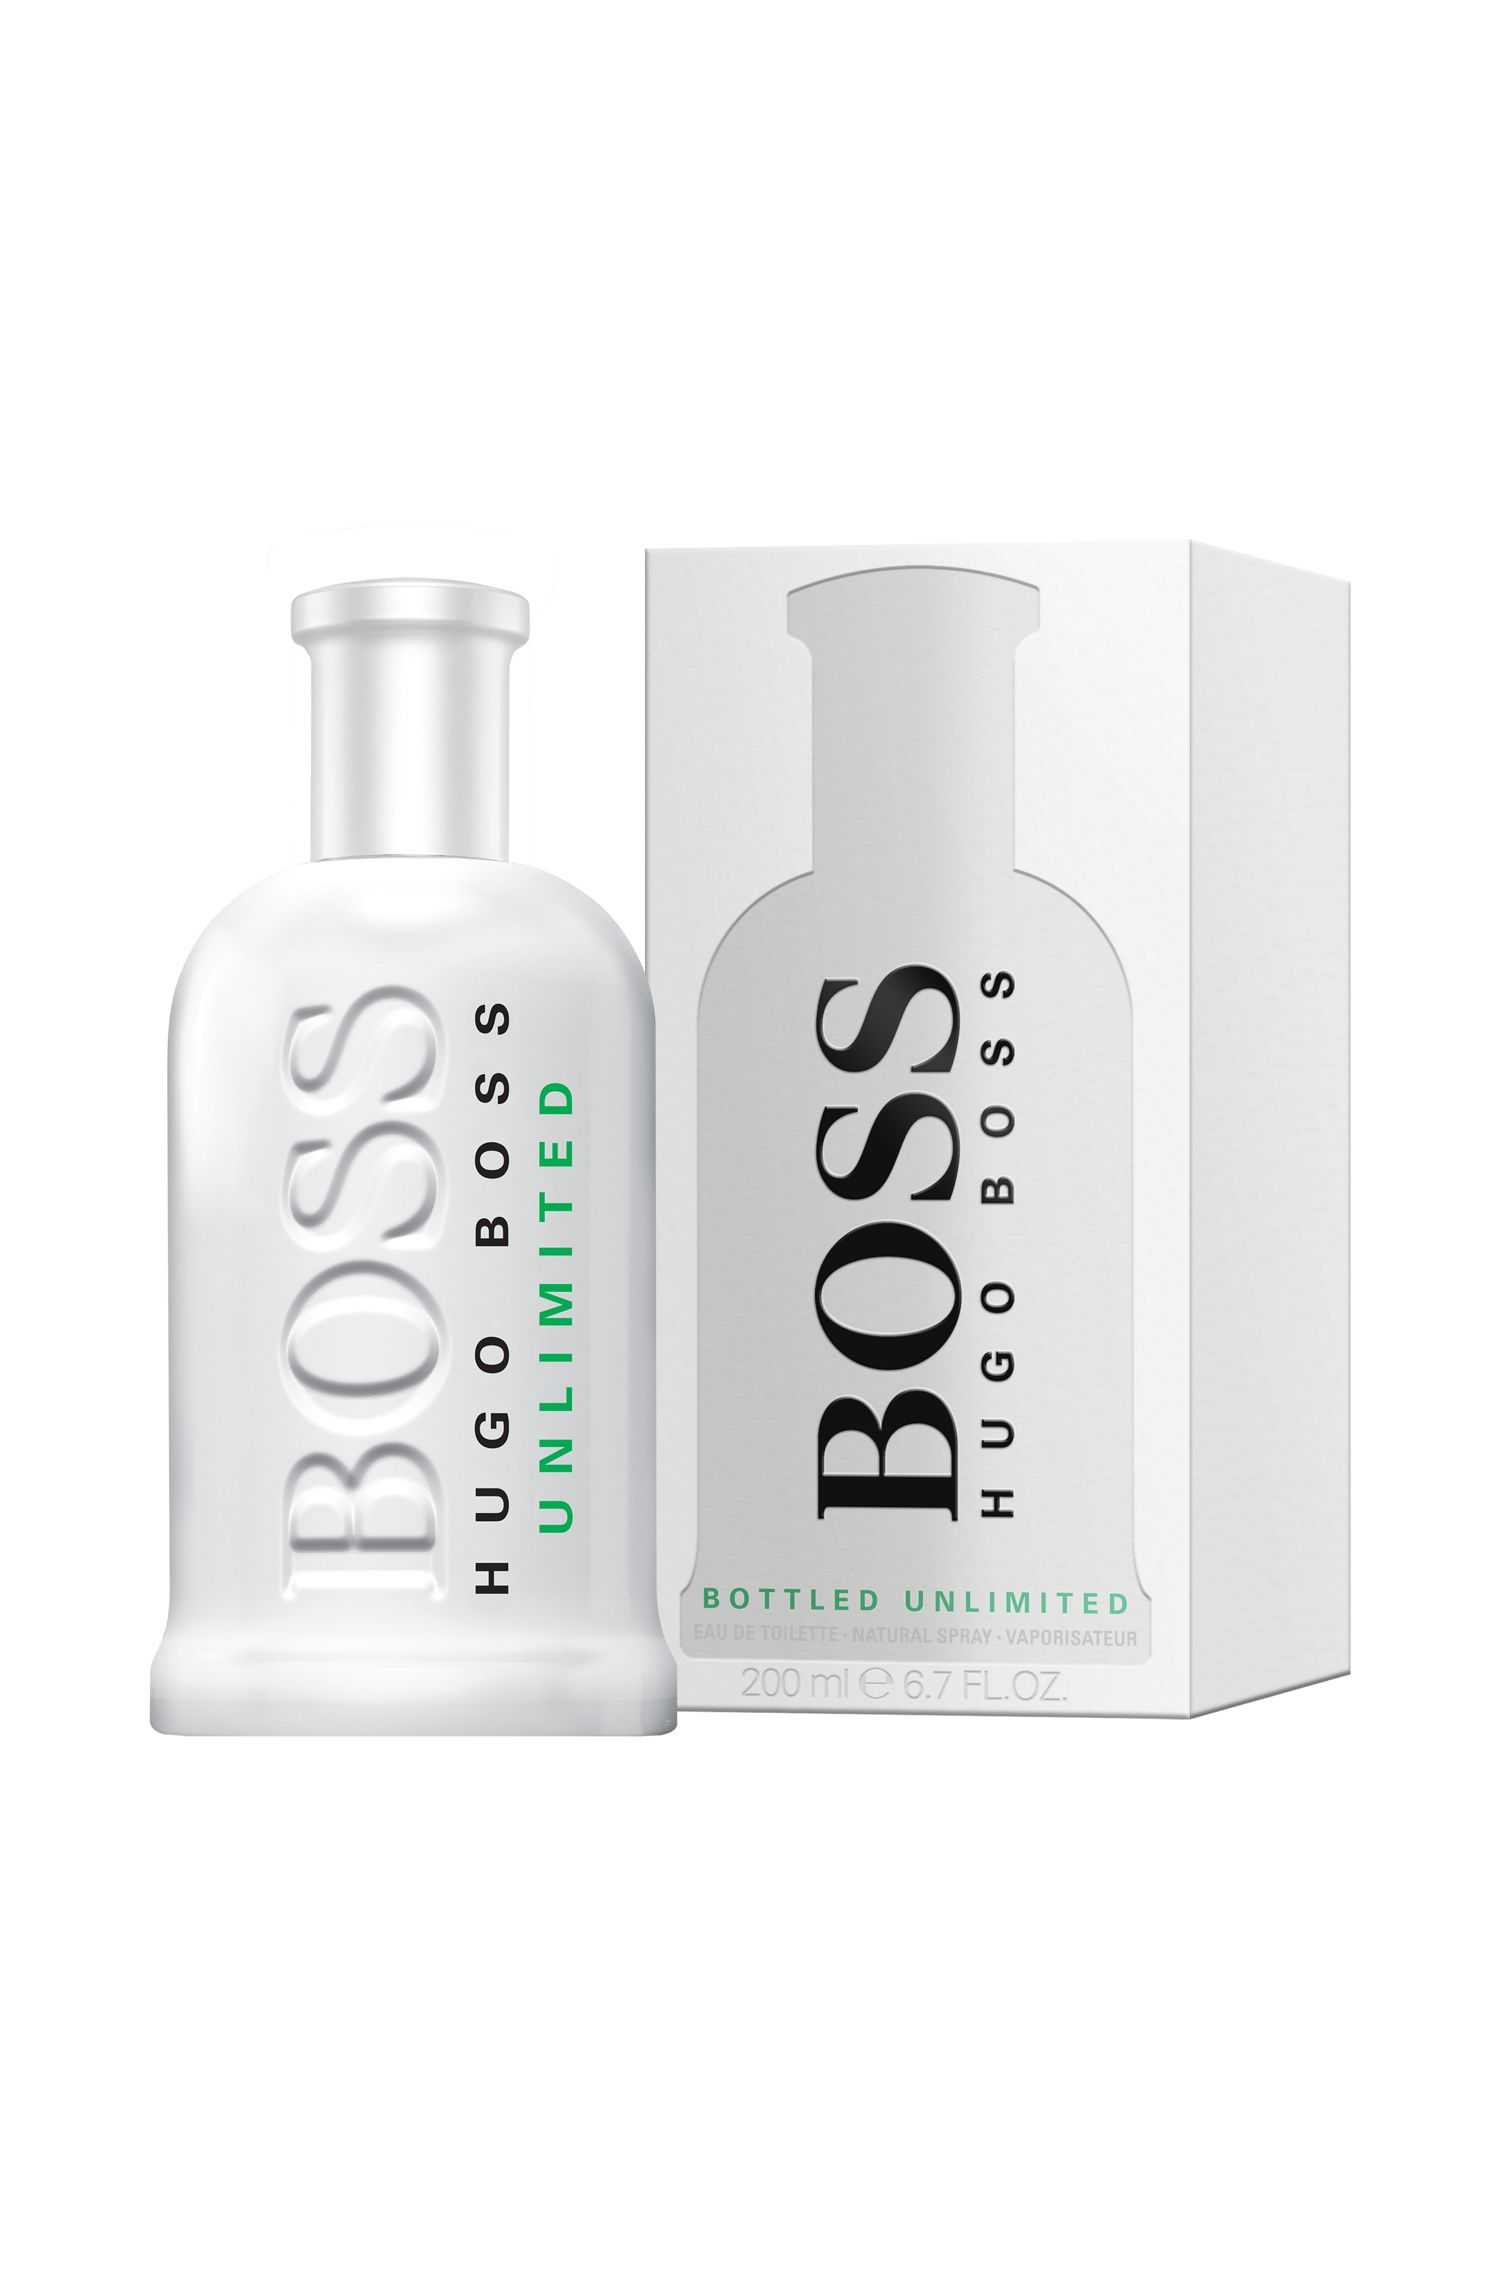 BOSS Bottled Unlimited Eau de Toilette 200 ml, Assorted-Pre-Pack